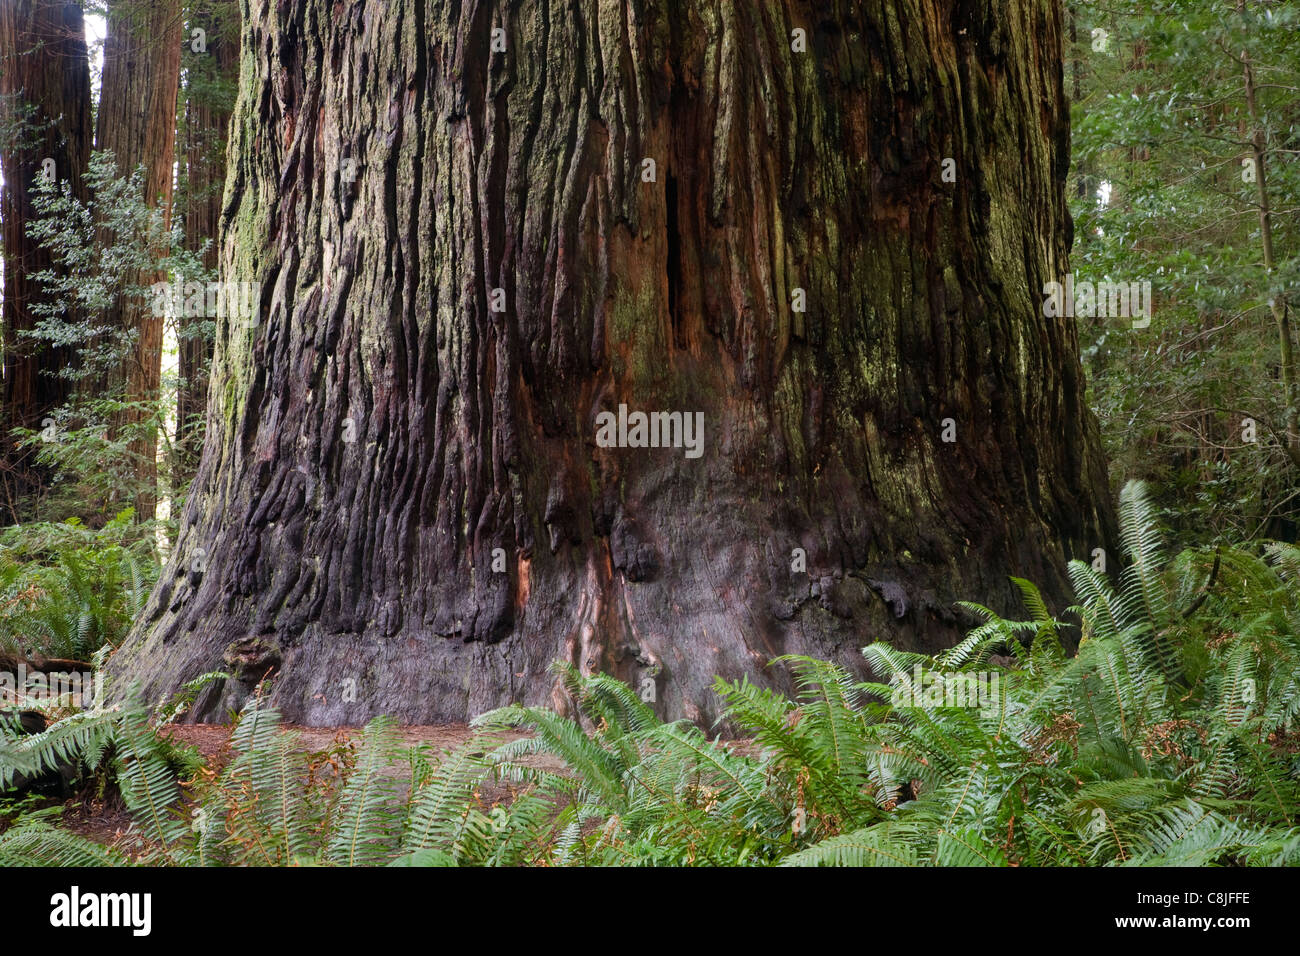 CALIFORNIA - Base of a giant redwood tree in Stout Grove at Jedediah Smith Redwoods State Park. - Stock Image